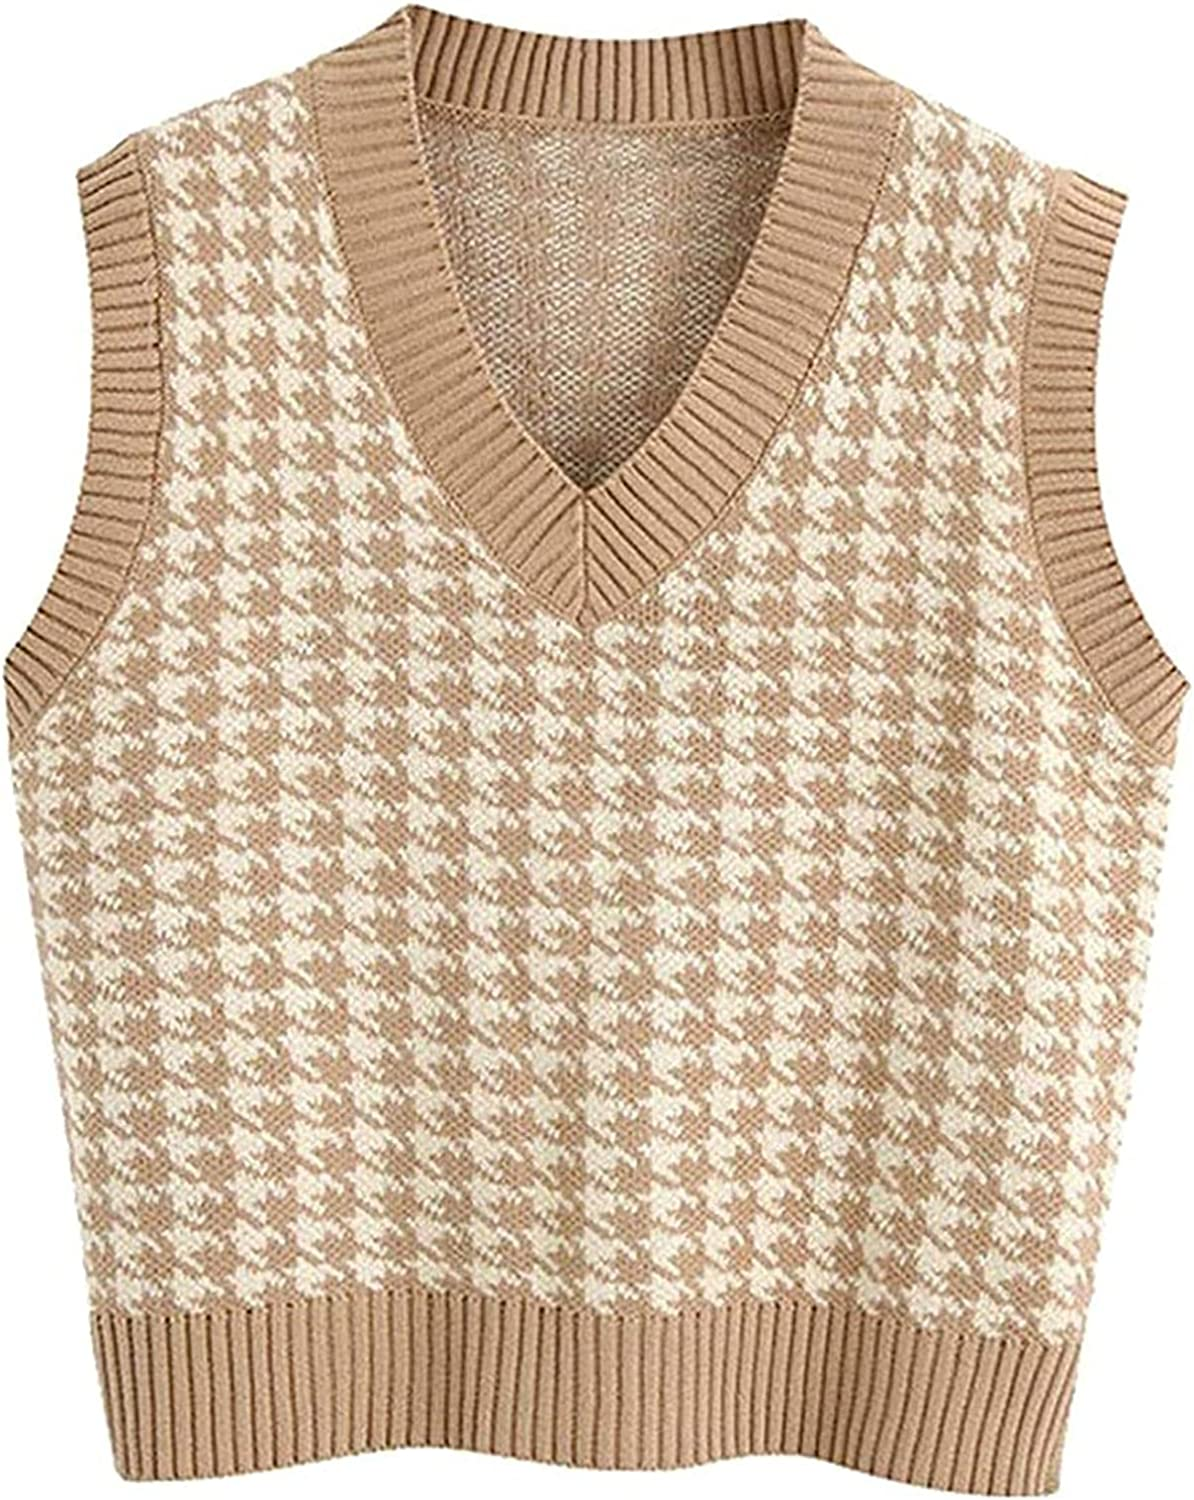 Women Fashion Houndstooth Loose Vest Sweater V Neck Sleeveless Side Vents Female Waistcoat Chic Tops